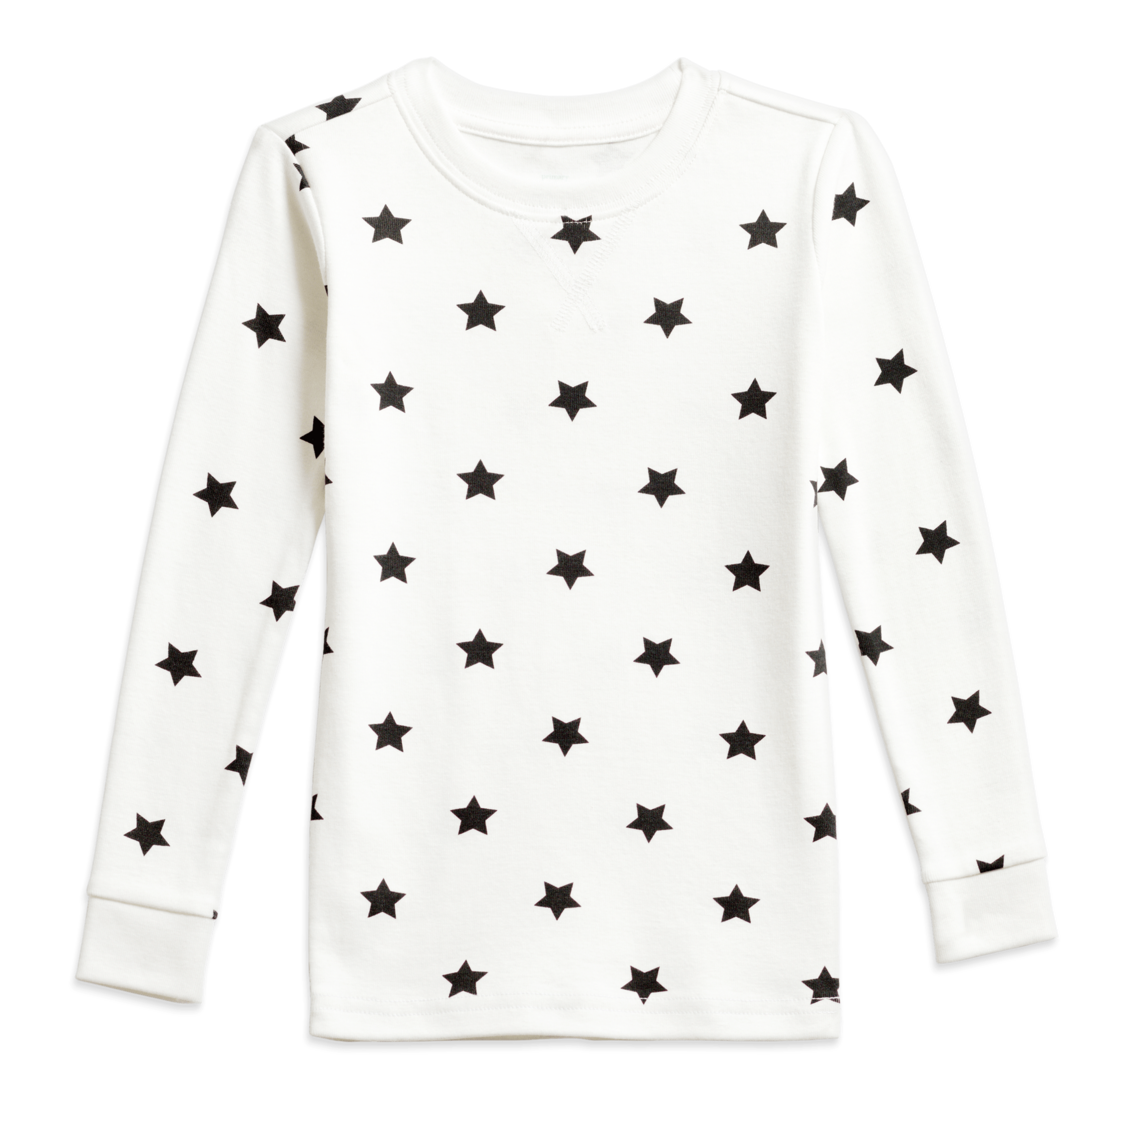 Kids Star Pj Top in 2020 Long sleeve cotton tops